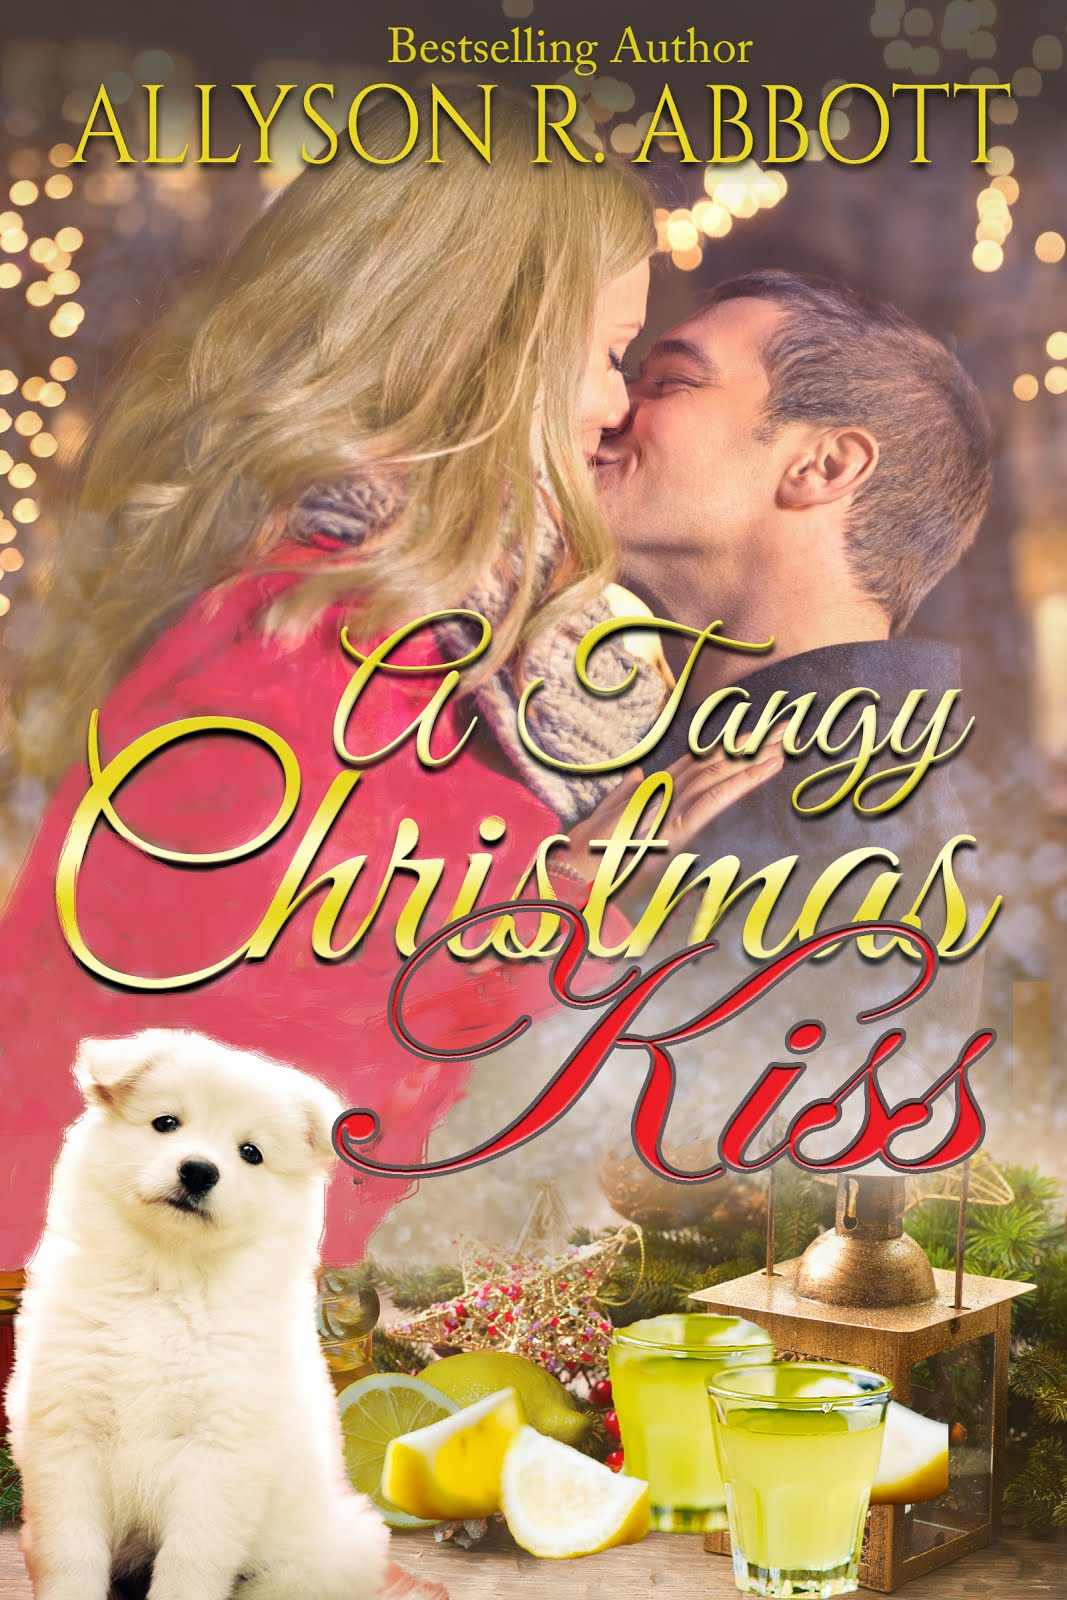 Book 2: A Tangy Christmas Kiss